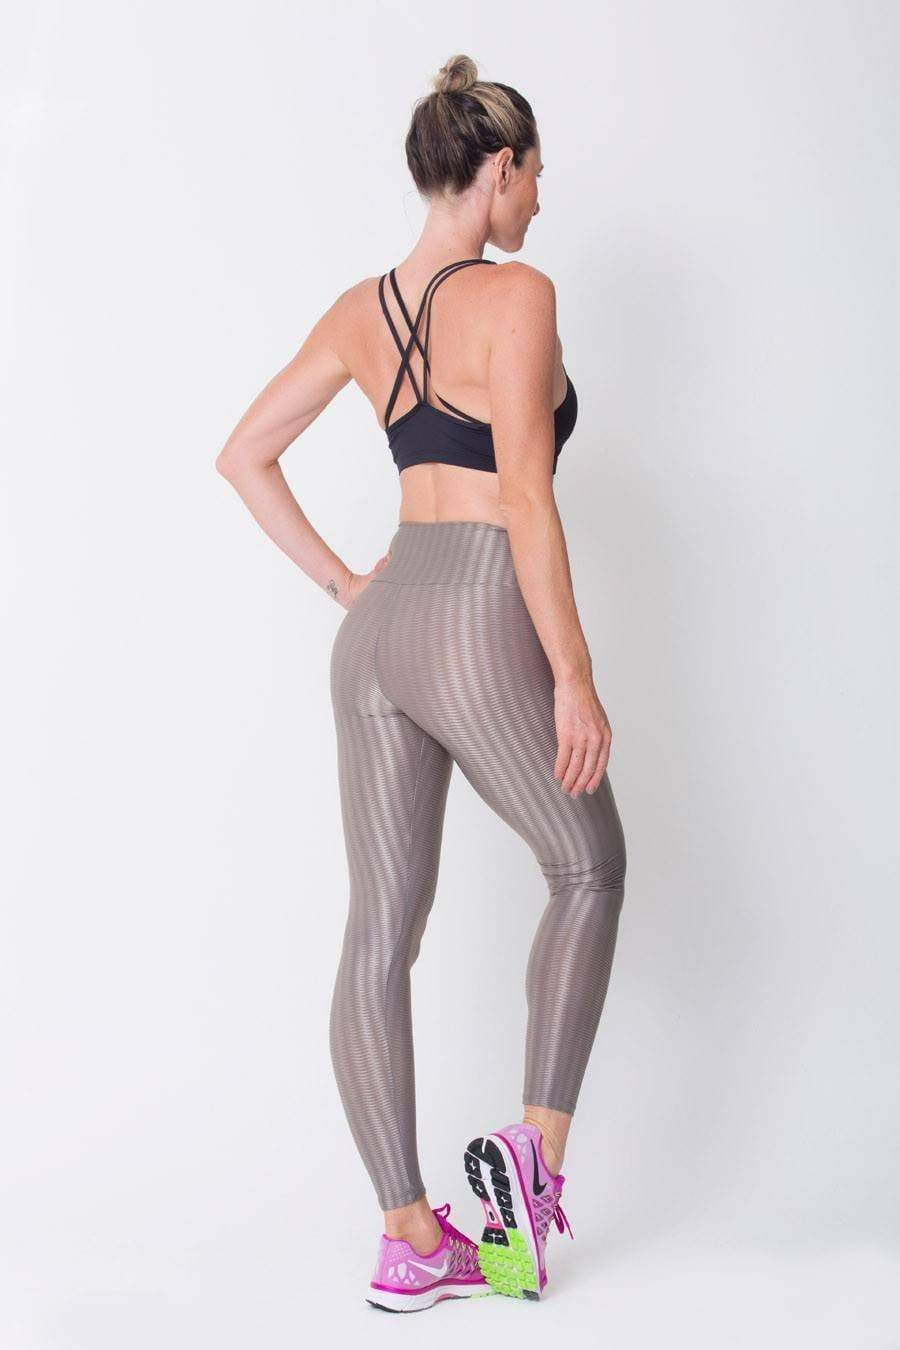 Grey	3D Disco Leggings - Sam's Fitness Goods